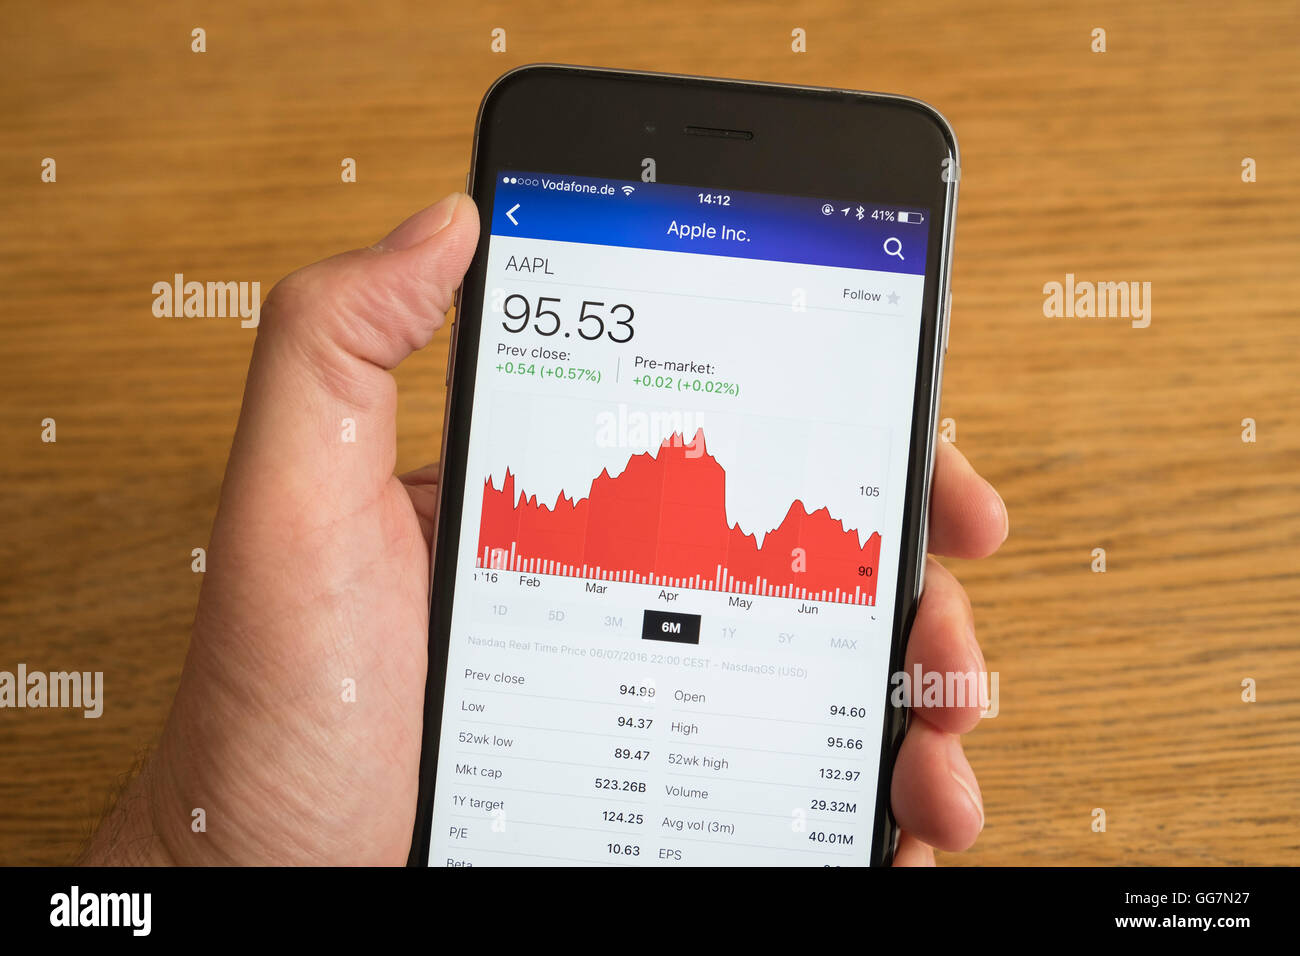 Detail of stock market performance of Apple company on a smart phone - Stock Image